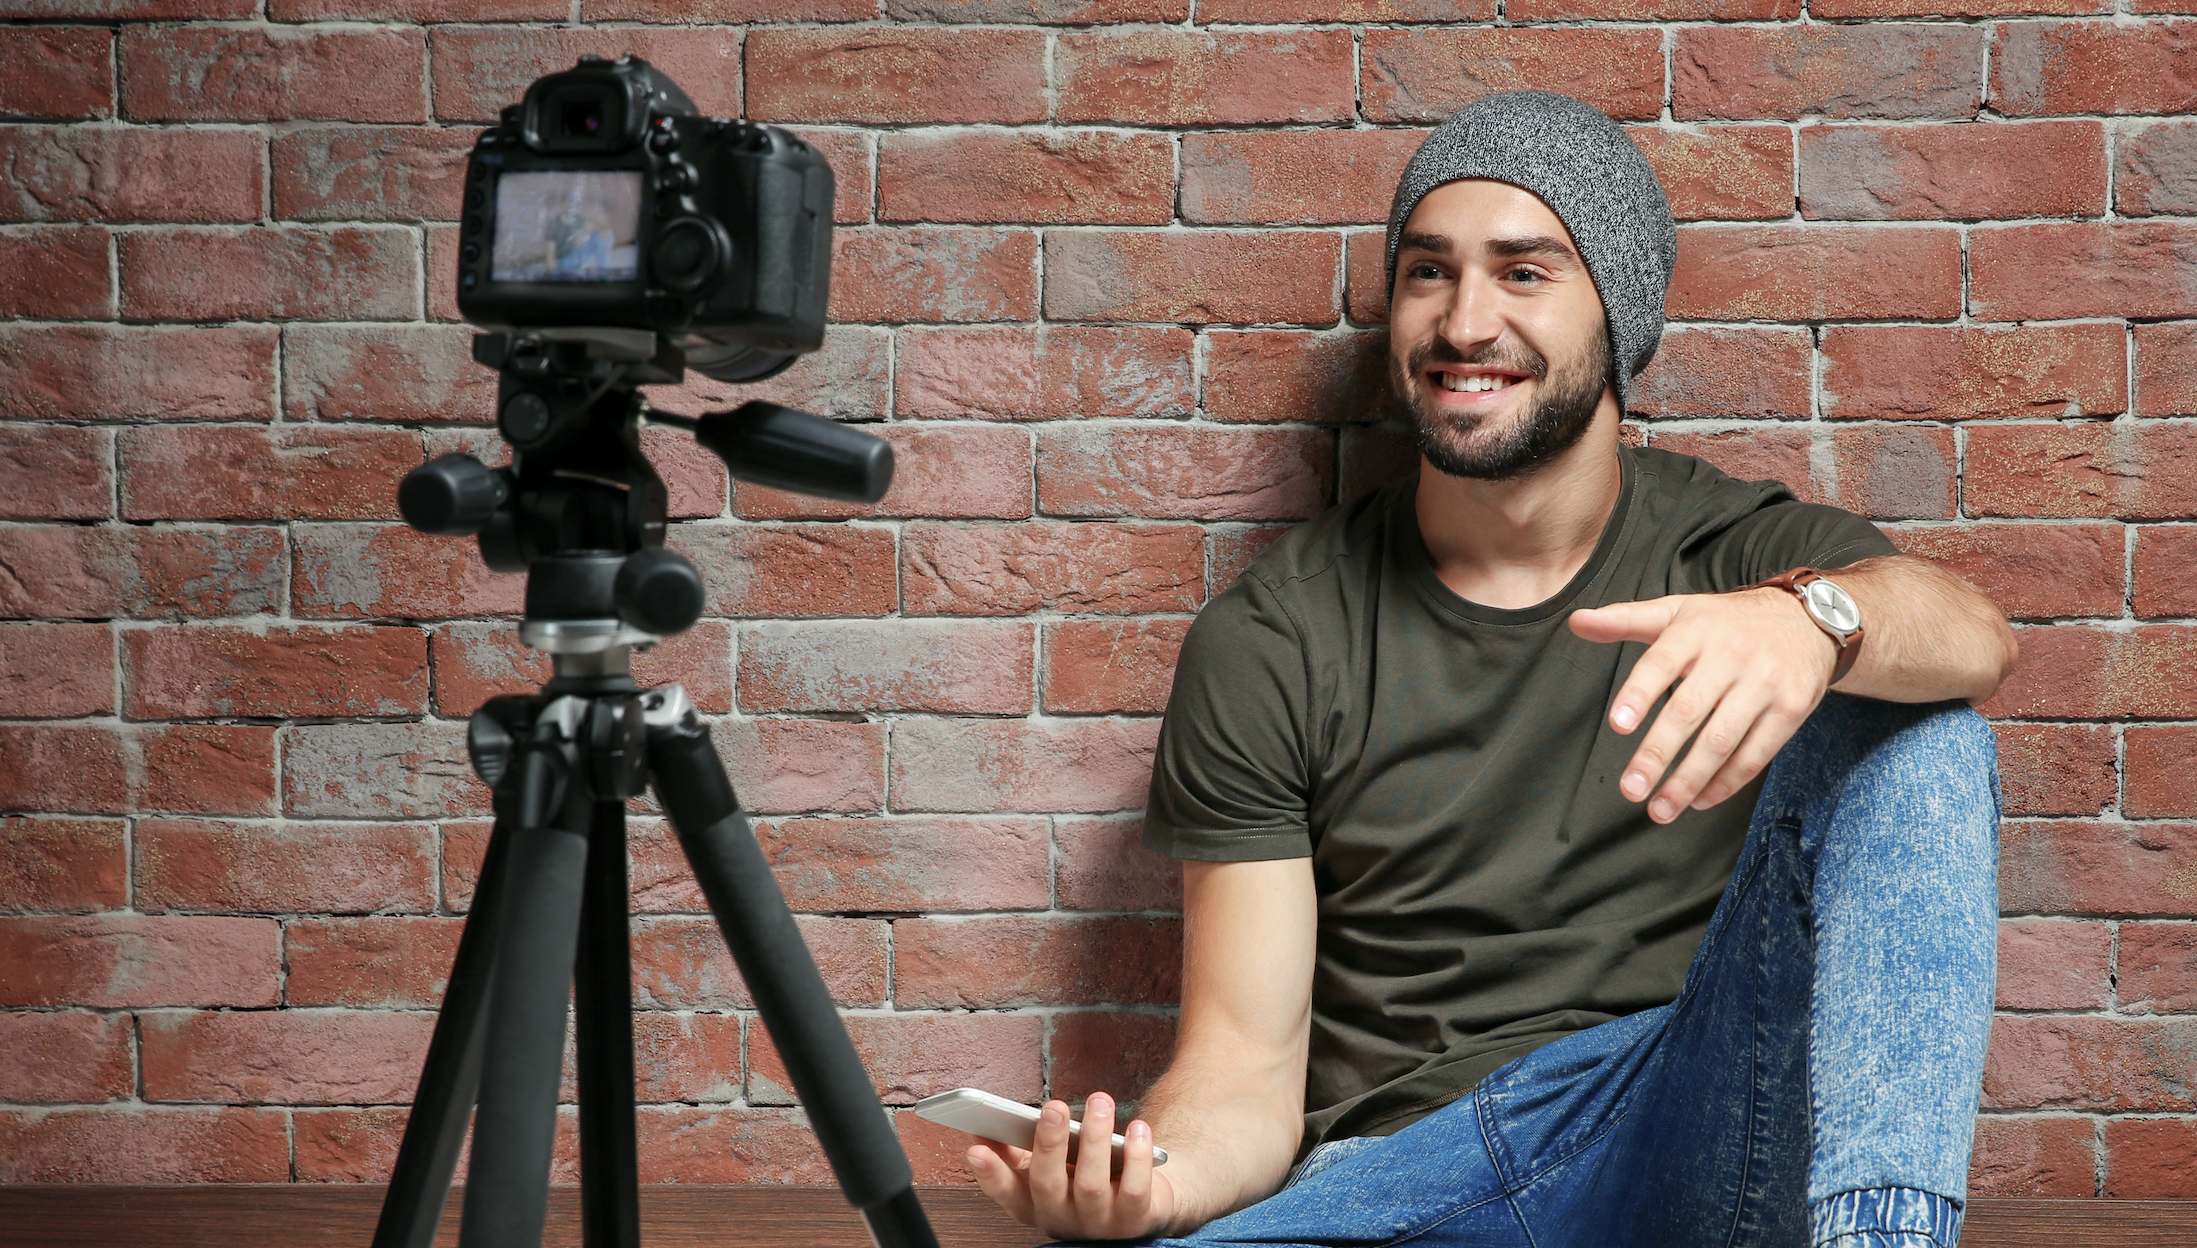 15 Things UK Casting Directors Want to See in a Remote Audition